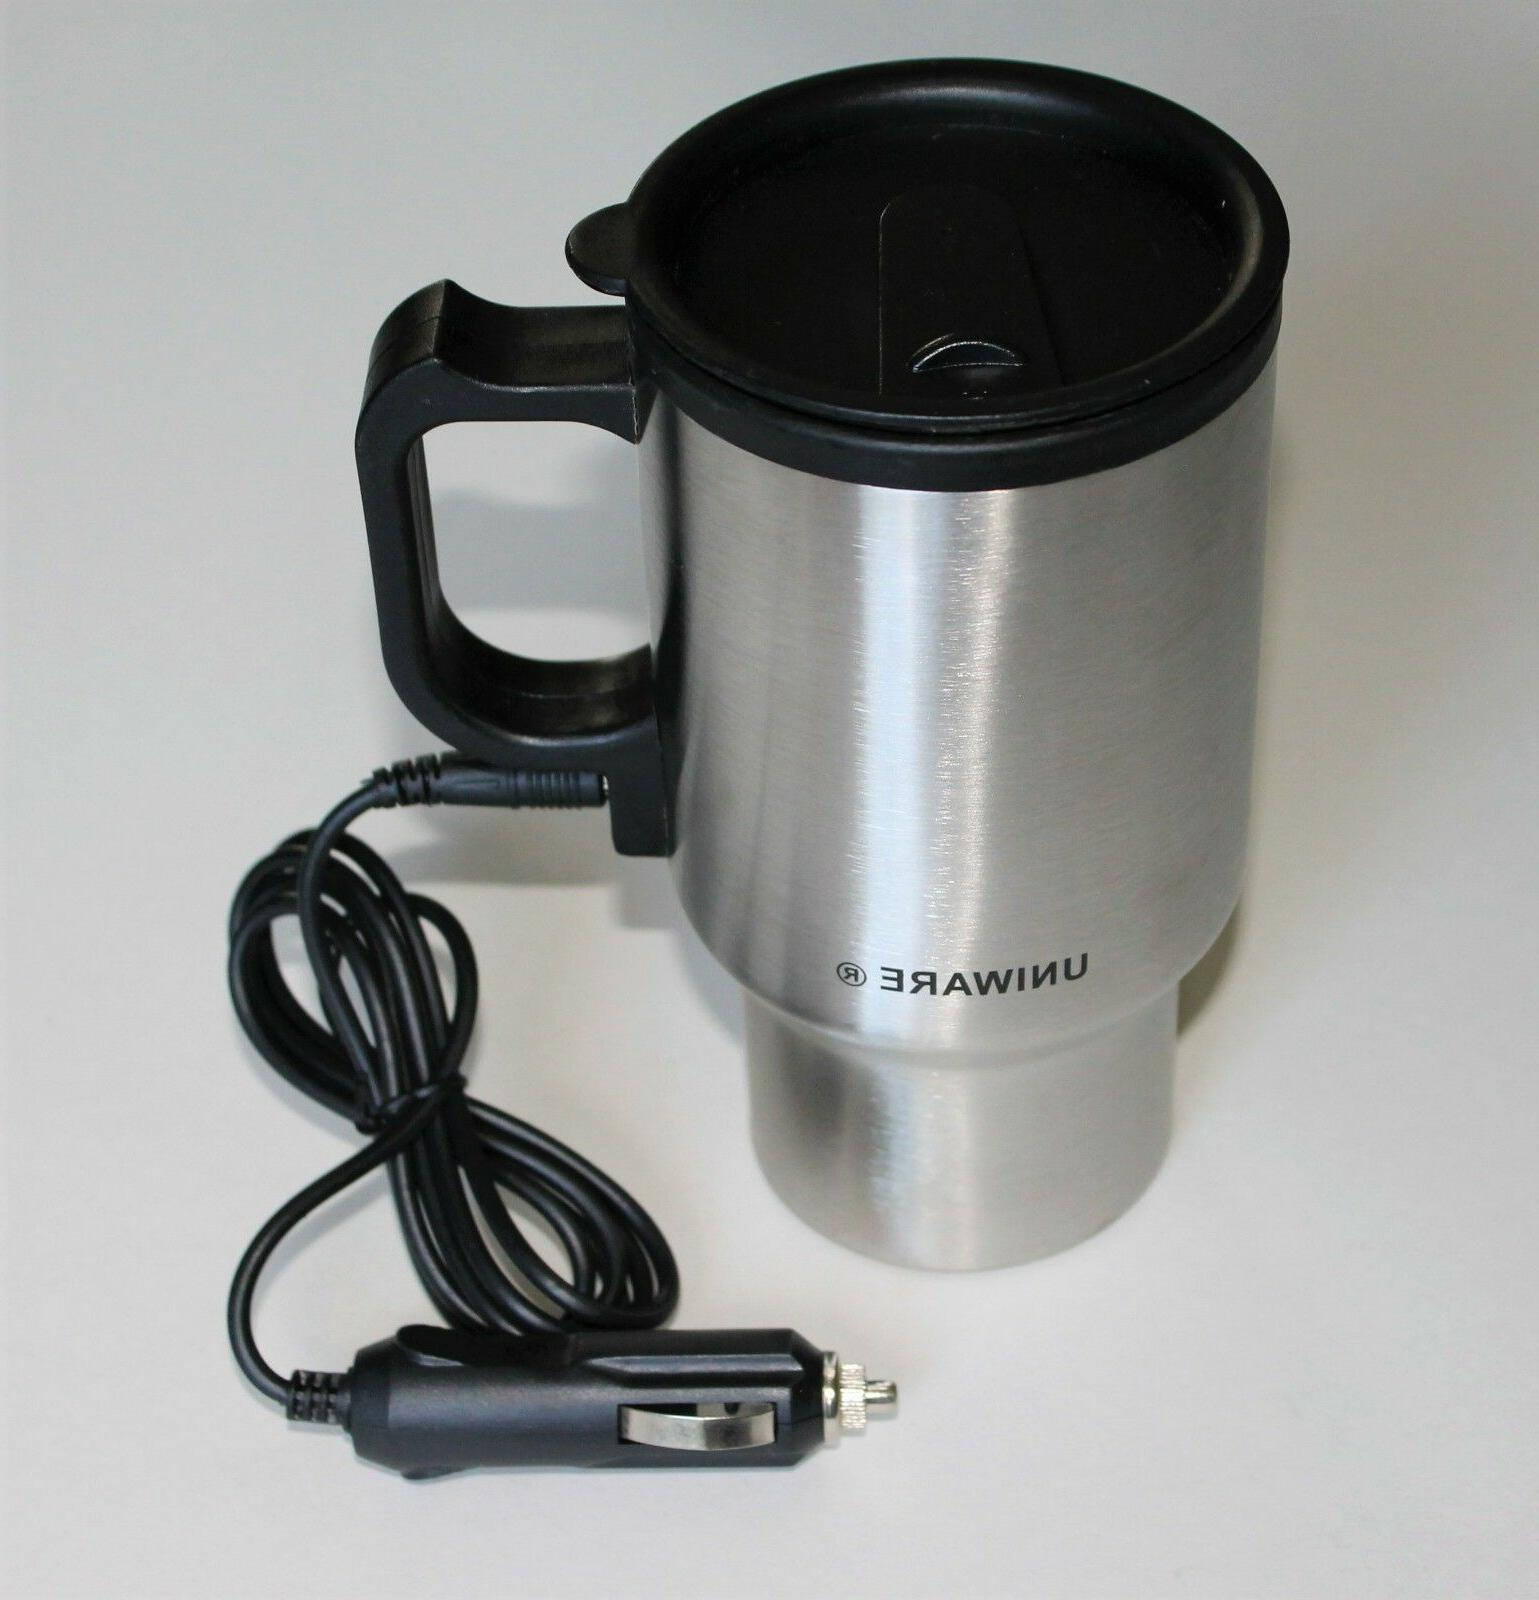 12V Thermos Electric Heated Travel Mug Stainless Steel Coffe